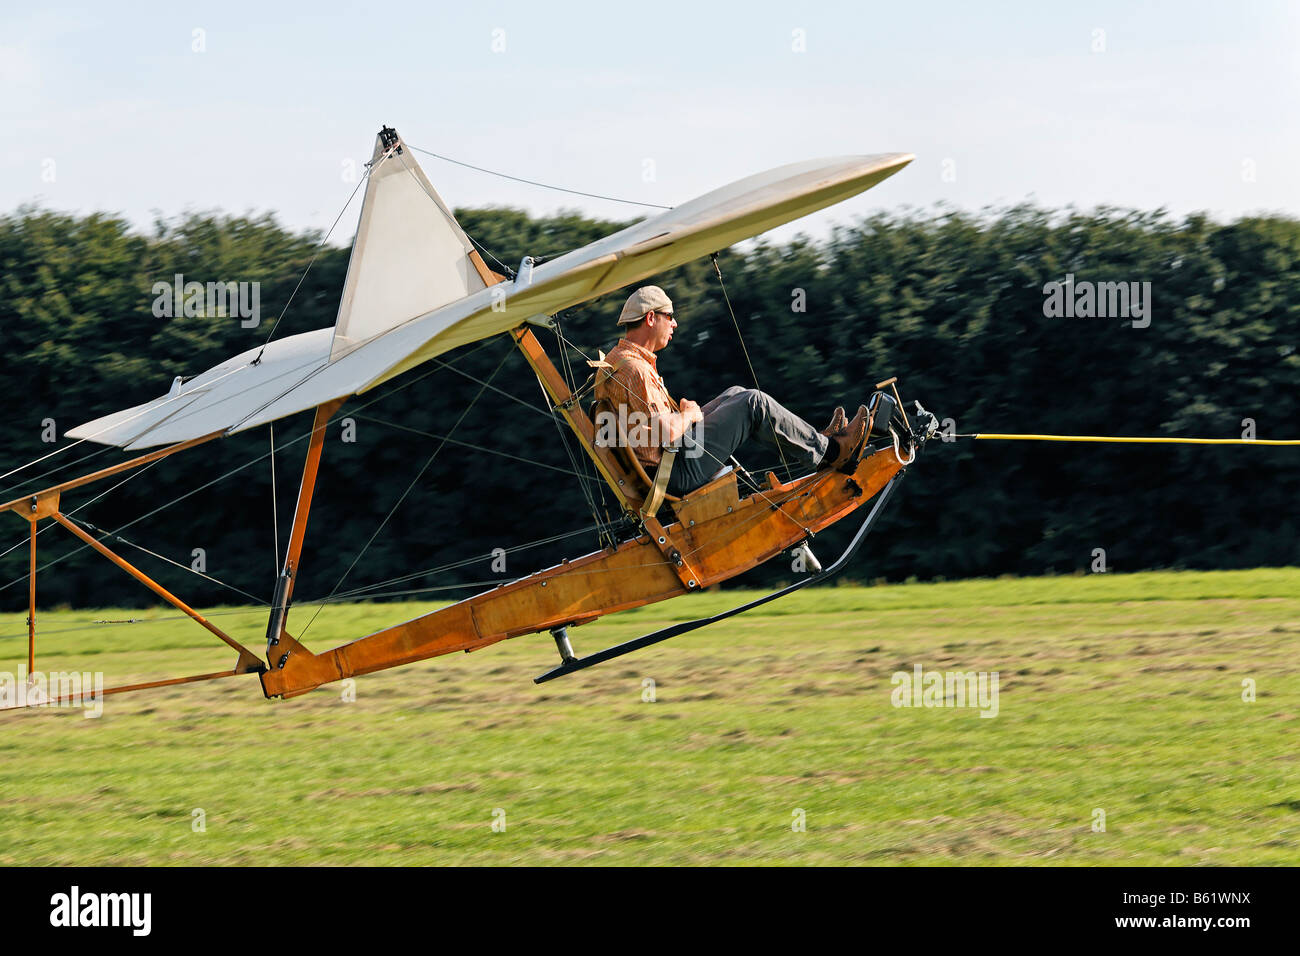 Historic glider SG38 being pulled on a cable into the air, wooden construction with an open seat, glider to train - Stock Image